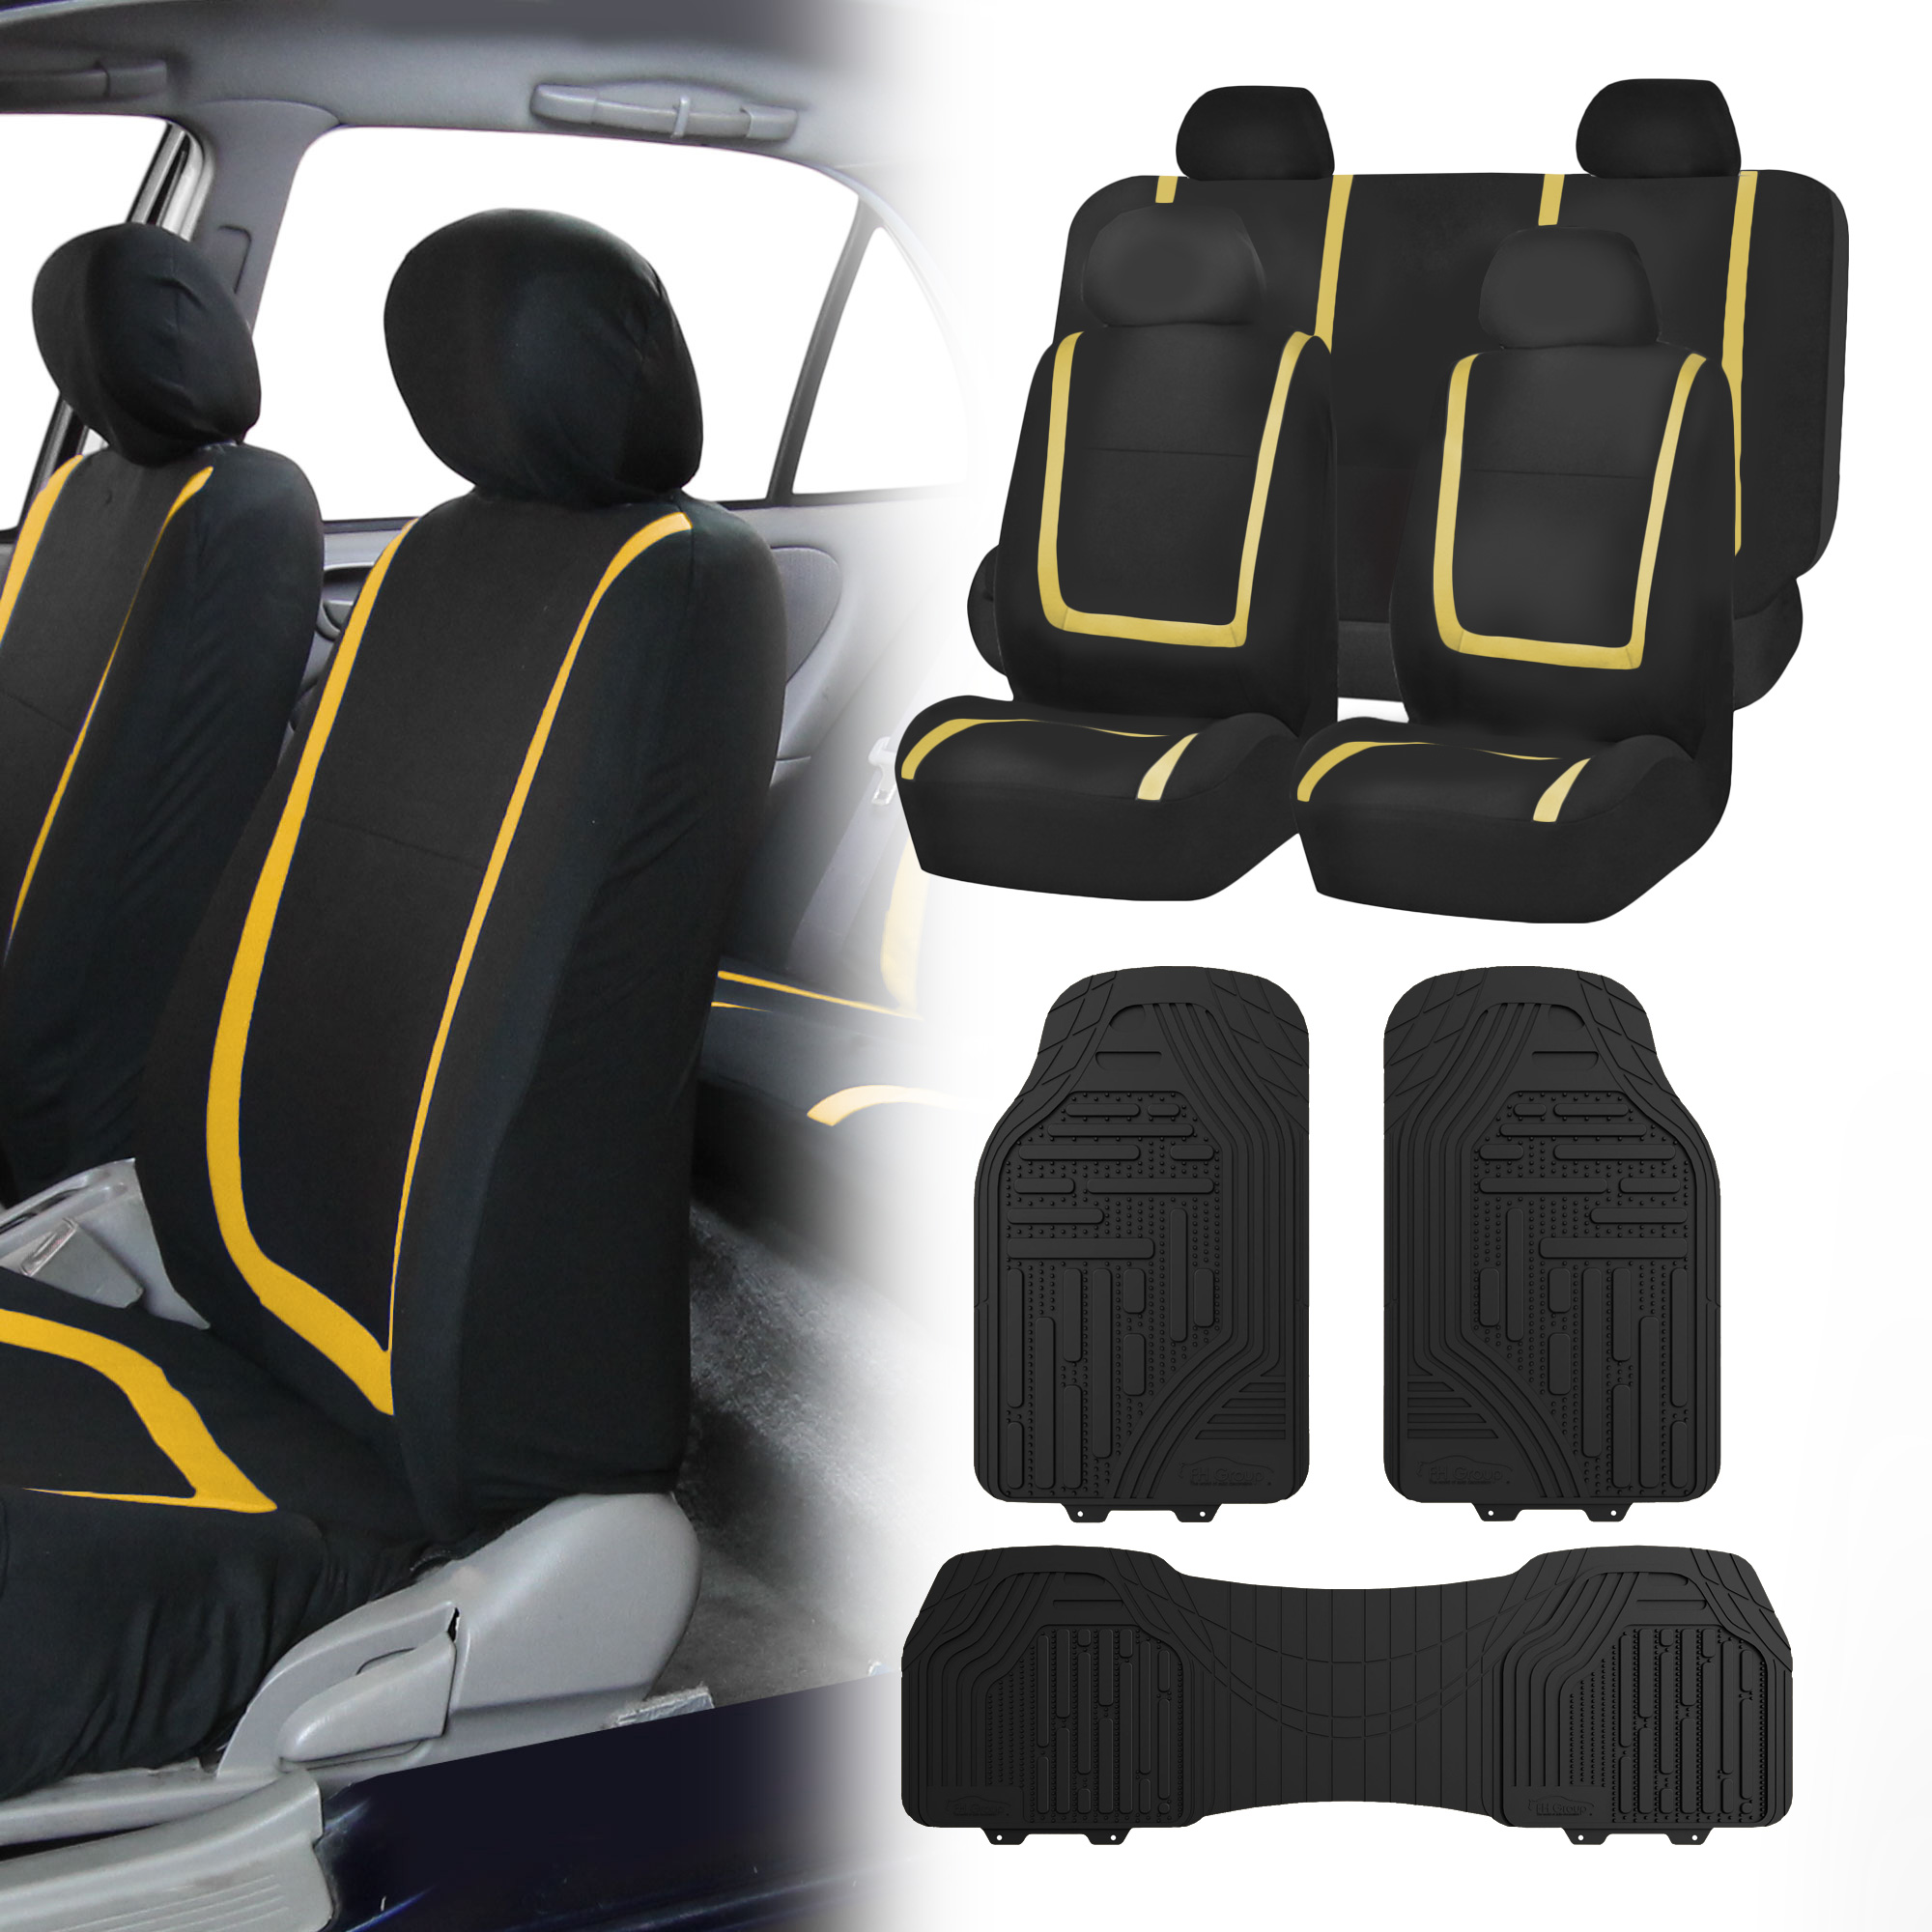 black yellow car seat covers with black premium floor mats for auto car suv ebay. Black Bedroom Furniture Sets. Home Design Ideas